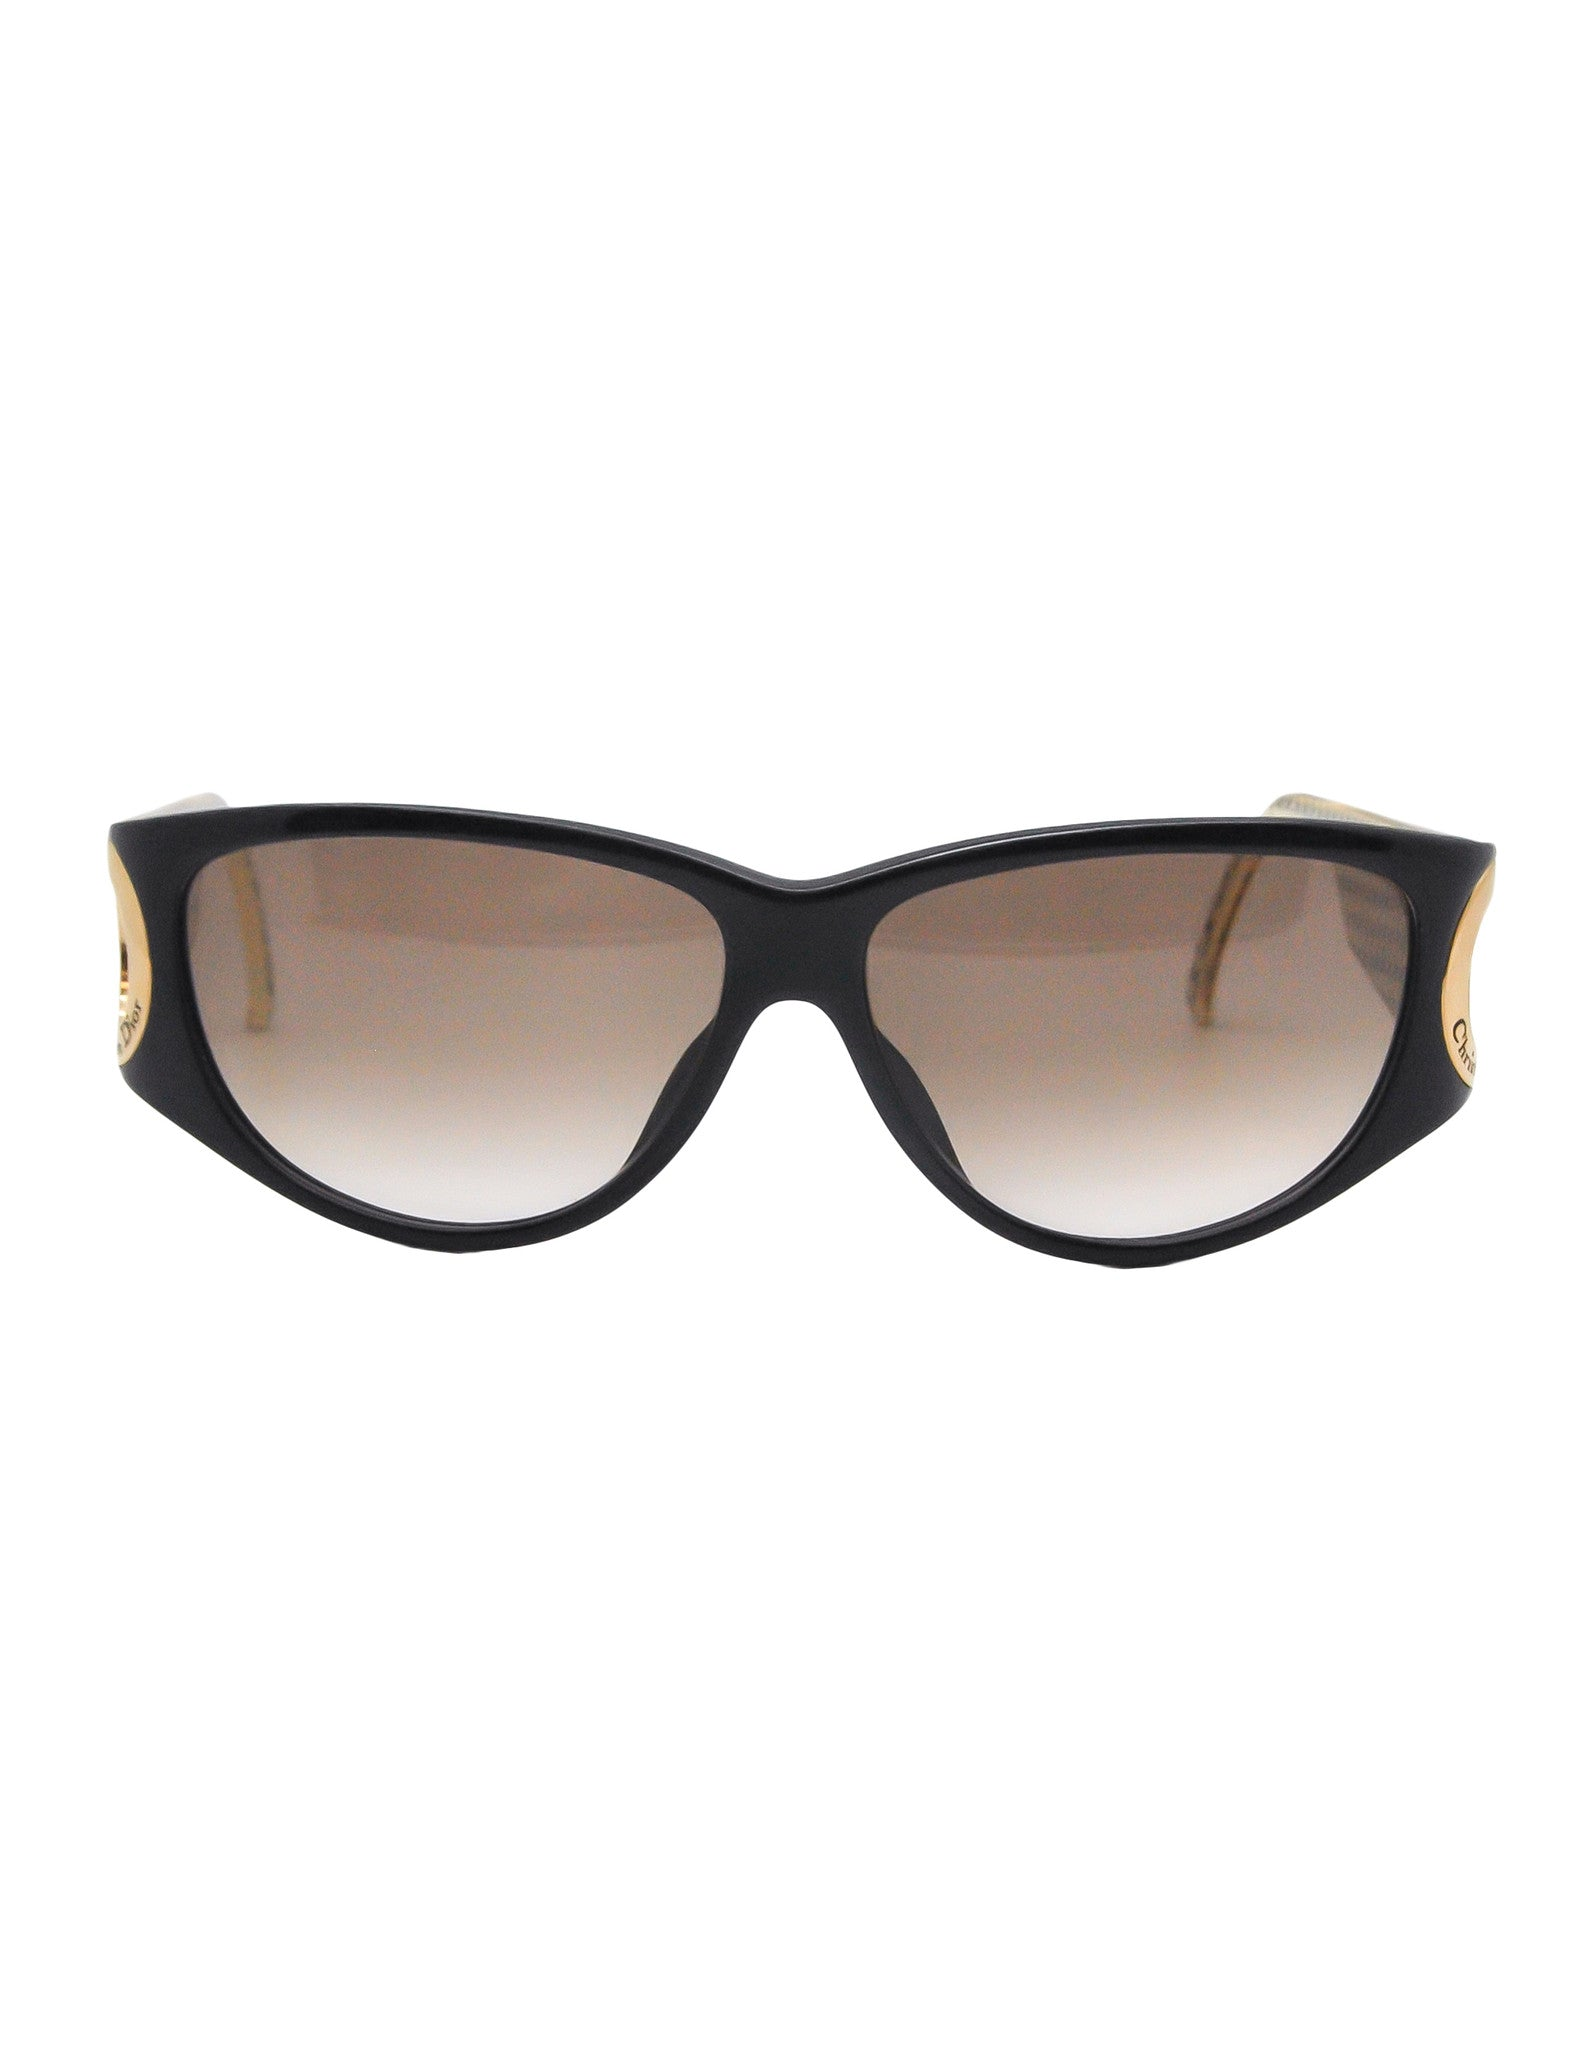 Christian Dior Black and Gold Houndstooth Sunglasses 2662 - Amarcord Vintage Fashion  - 1